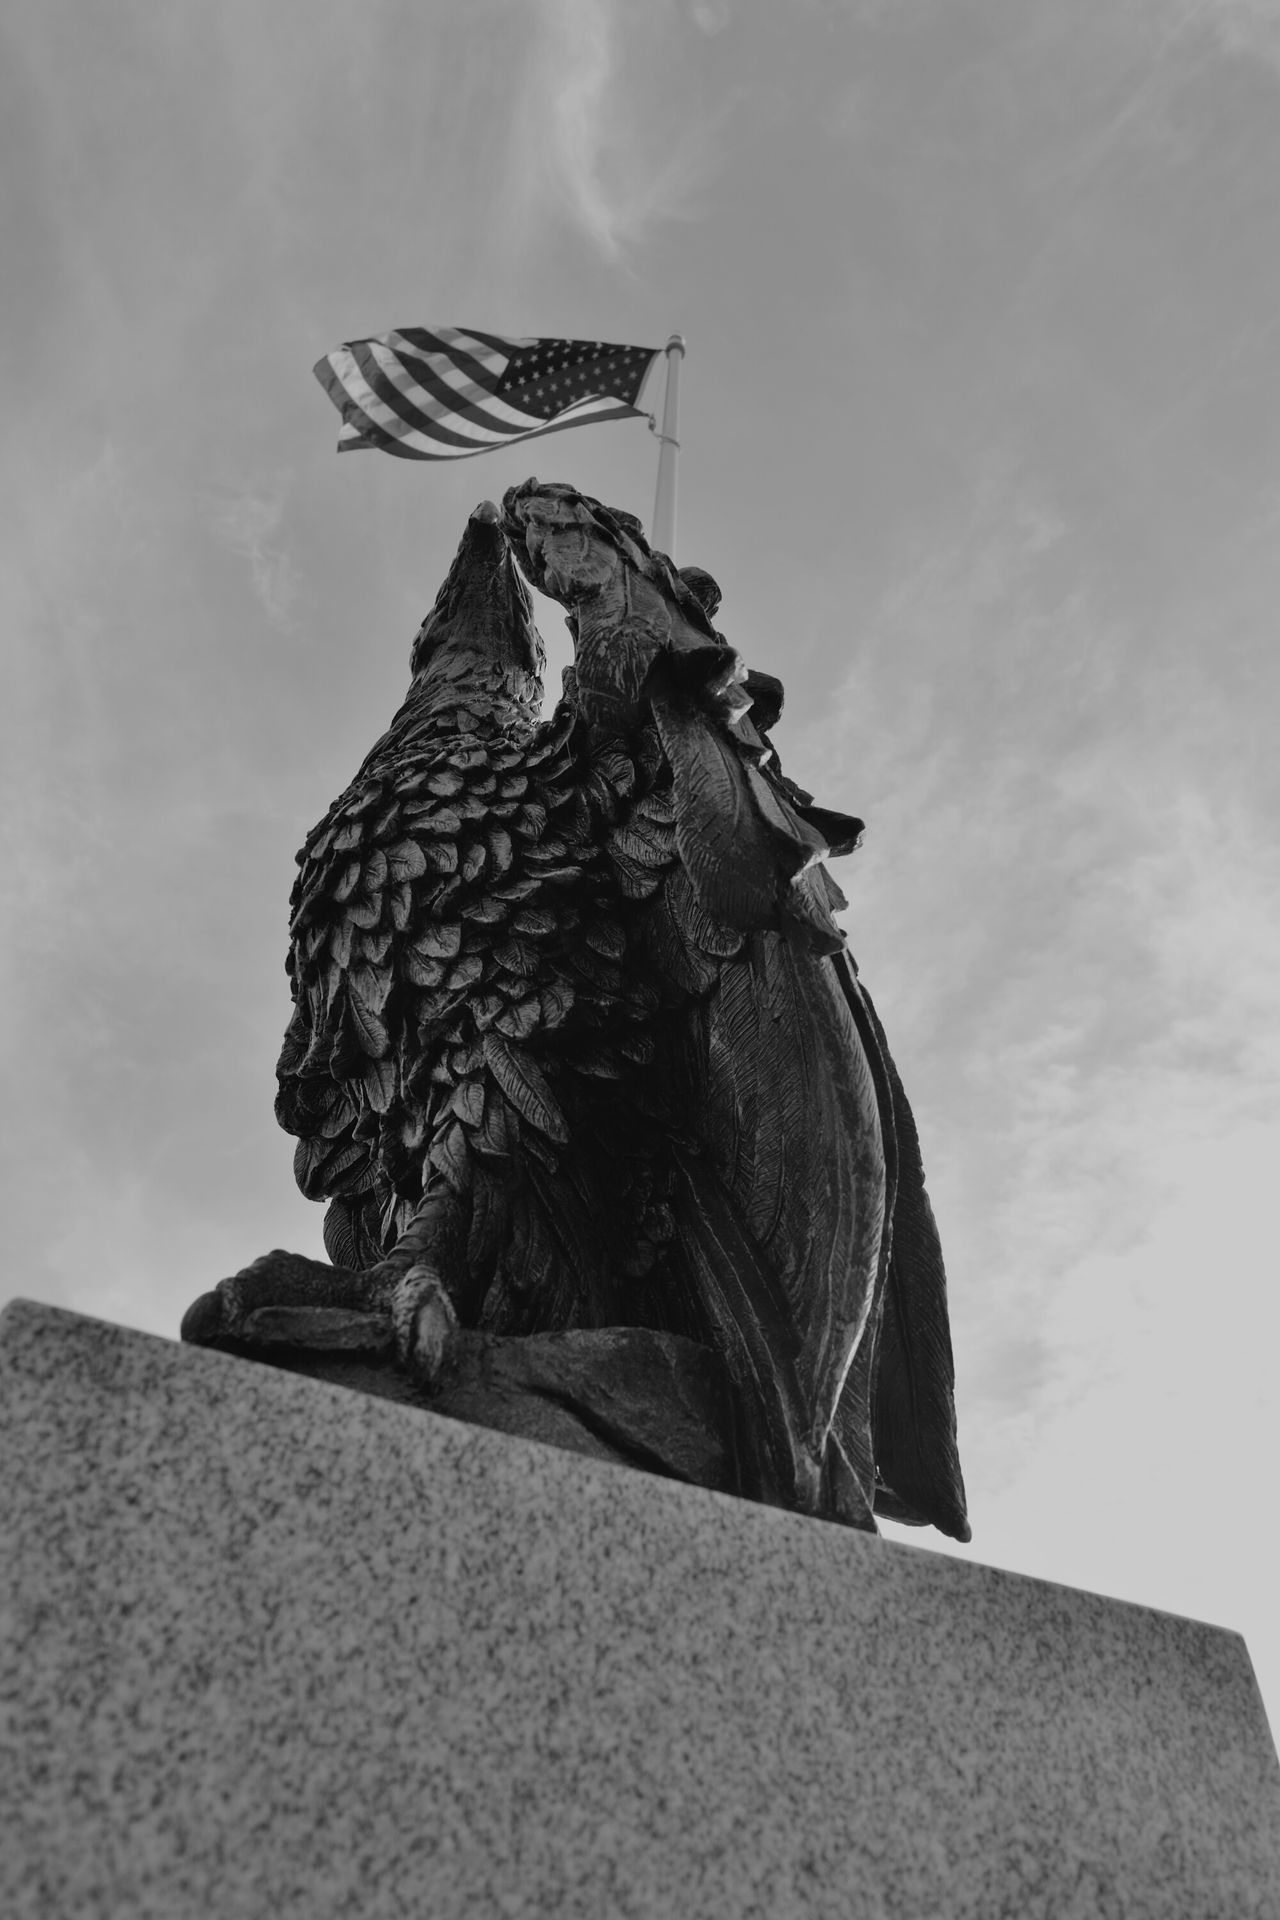 Improving my eye. Sky No People Cloud - Sky Sculpture Bird Architecture Statue Outdoors Day Black And White Blackandwhite Black&white USA American Flag American Bald Eagle America Self Improvement Adapted To The City